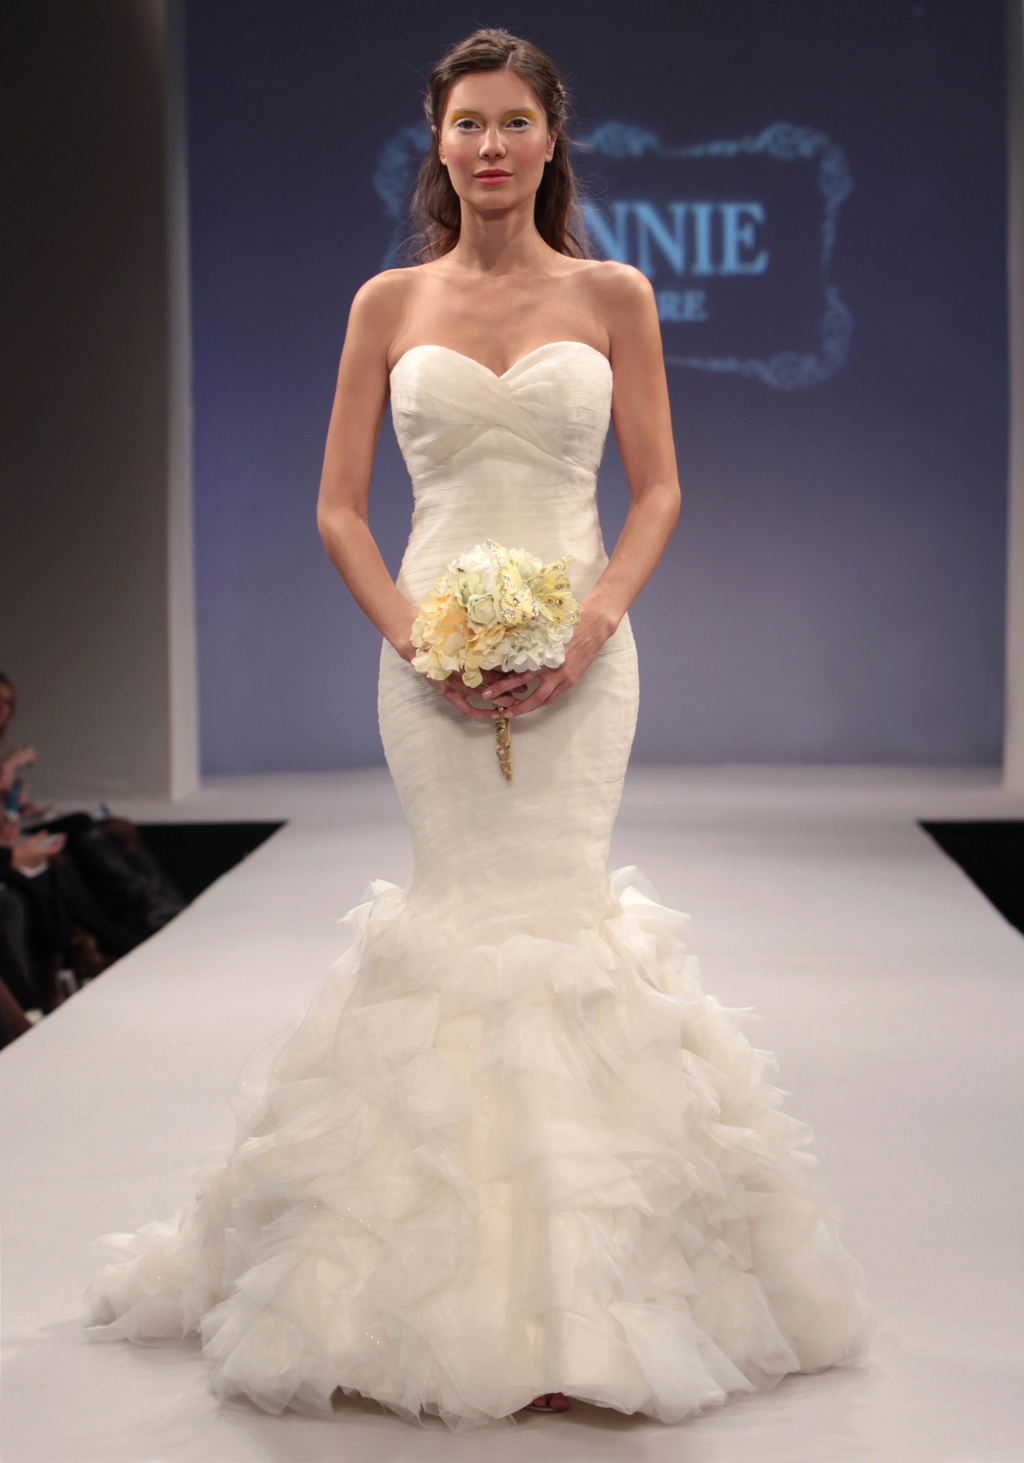 Winnie-couture-bridal-gown-spring-2013-wedding-dress-esme.full